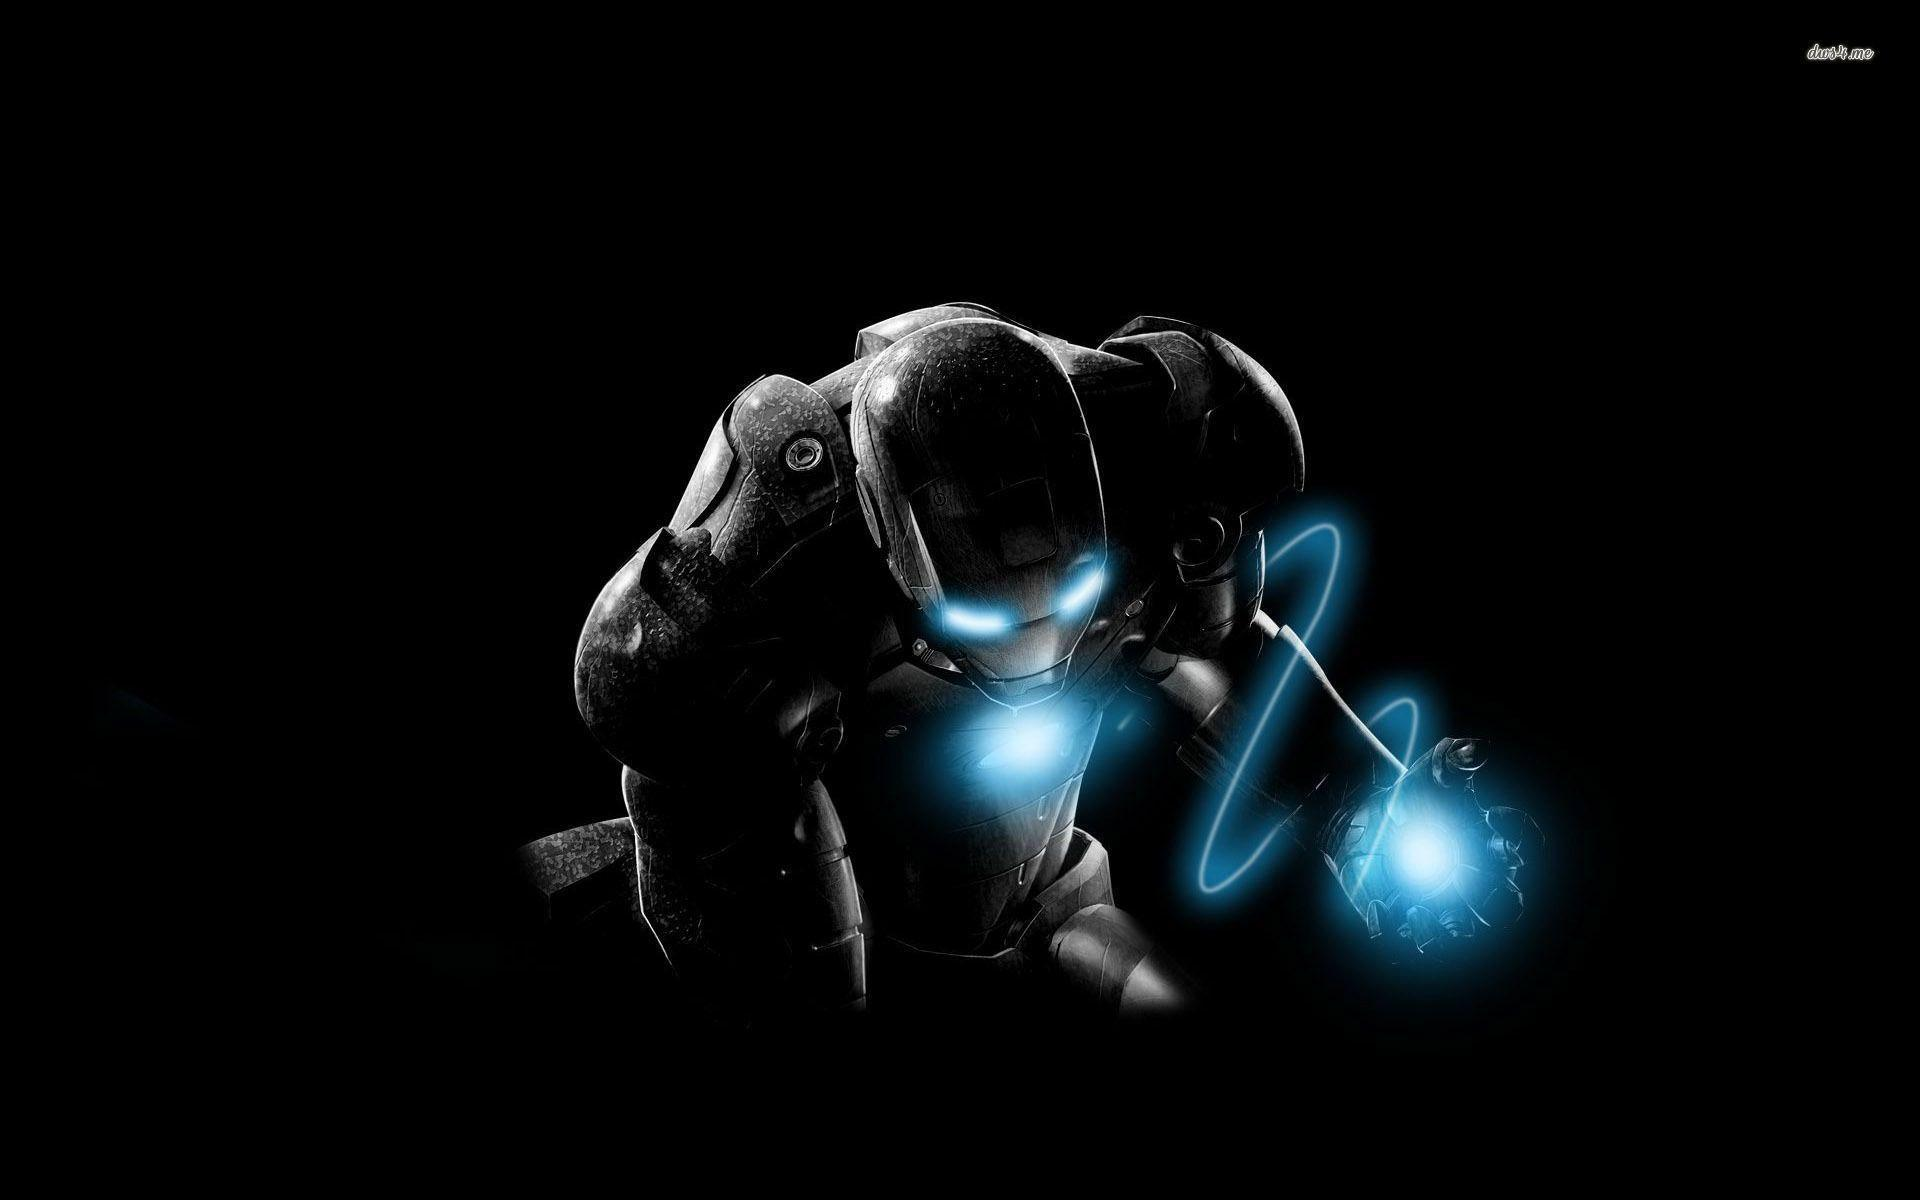 Iron Man Wallpapers - Full HD wallpaper search